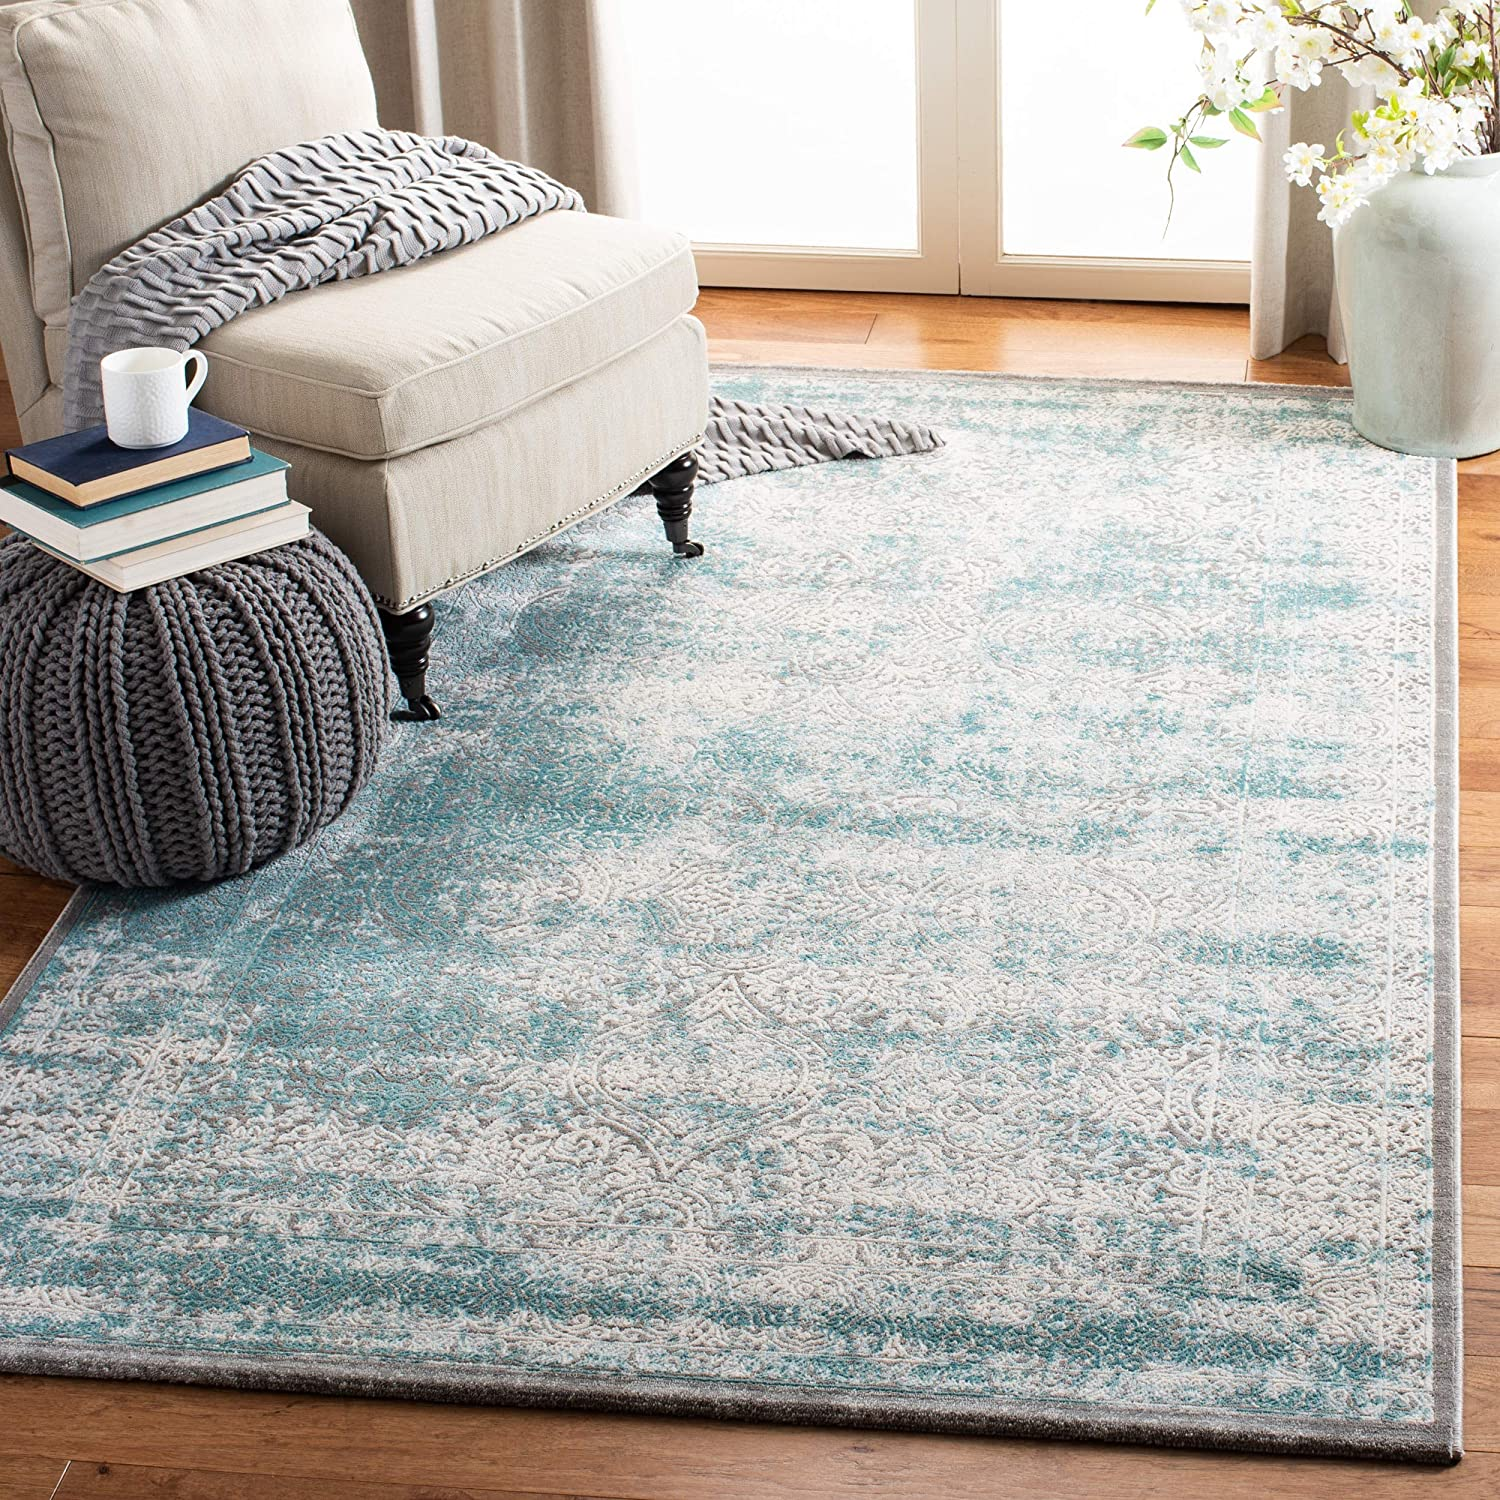 Amazon Com Safavieh Passion Collection Pas401b Vintage Distressed Area Rug 4 X 5 7 Turquoise Ivory Furniture Decor